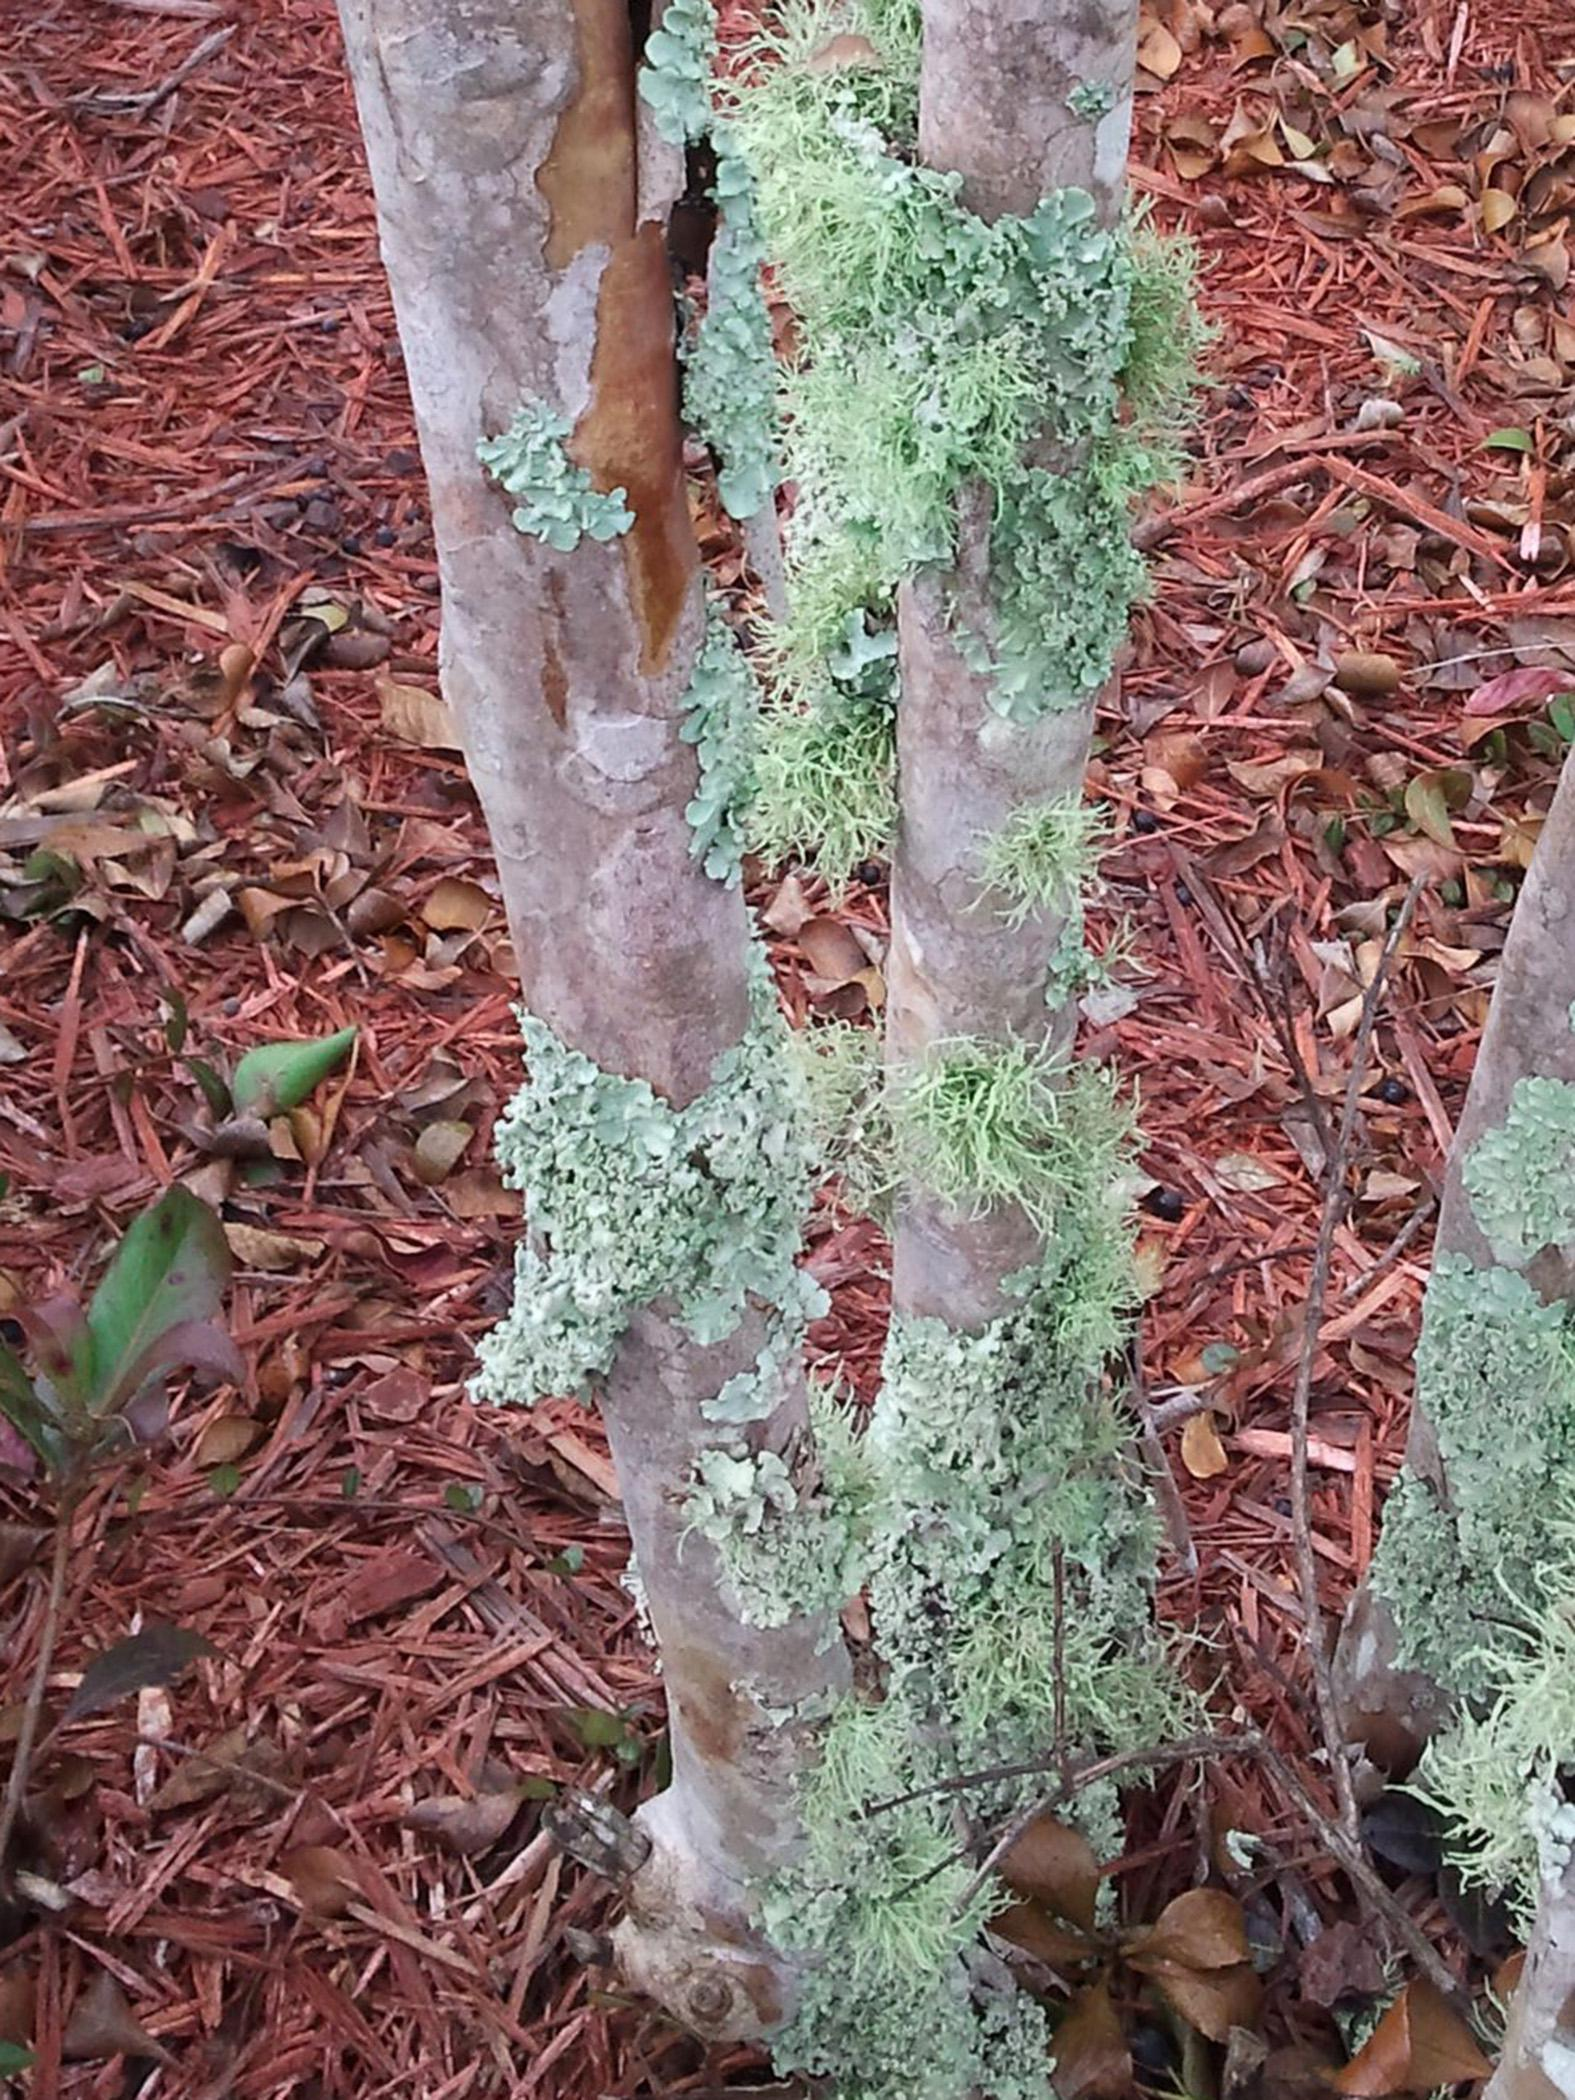 Lichens are an unlikely combination of fungi and algae that survive in a symbiotic relationship. They do not harm the plants on which they grow. Three main types of lichen are found on the bark of woody plants and on rocks and other hard surfaces. (Photo by MSU Extension Service/Gary Bachman)